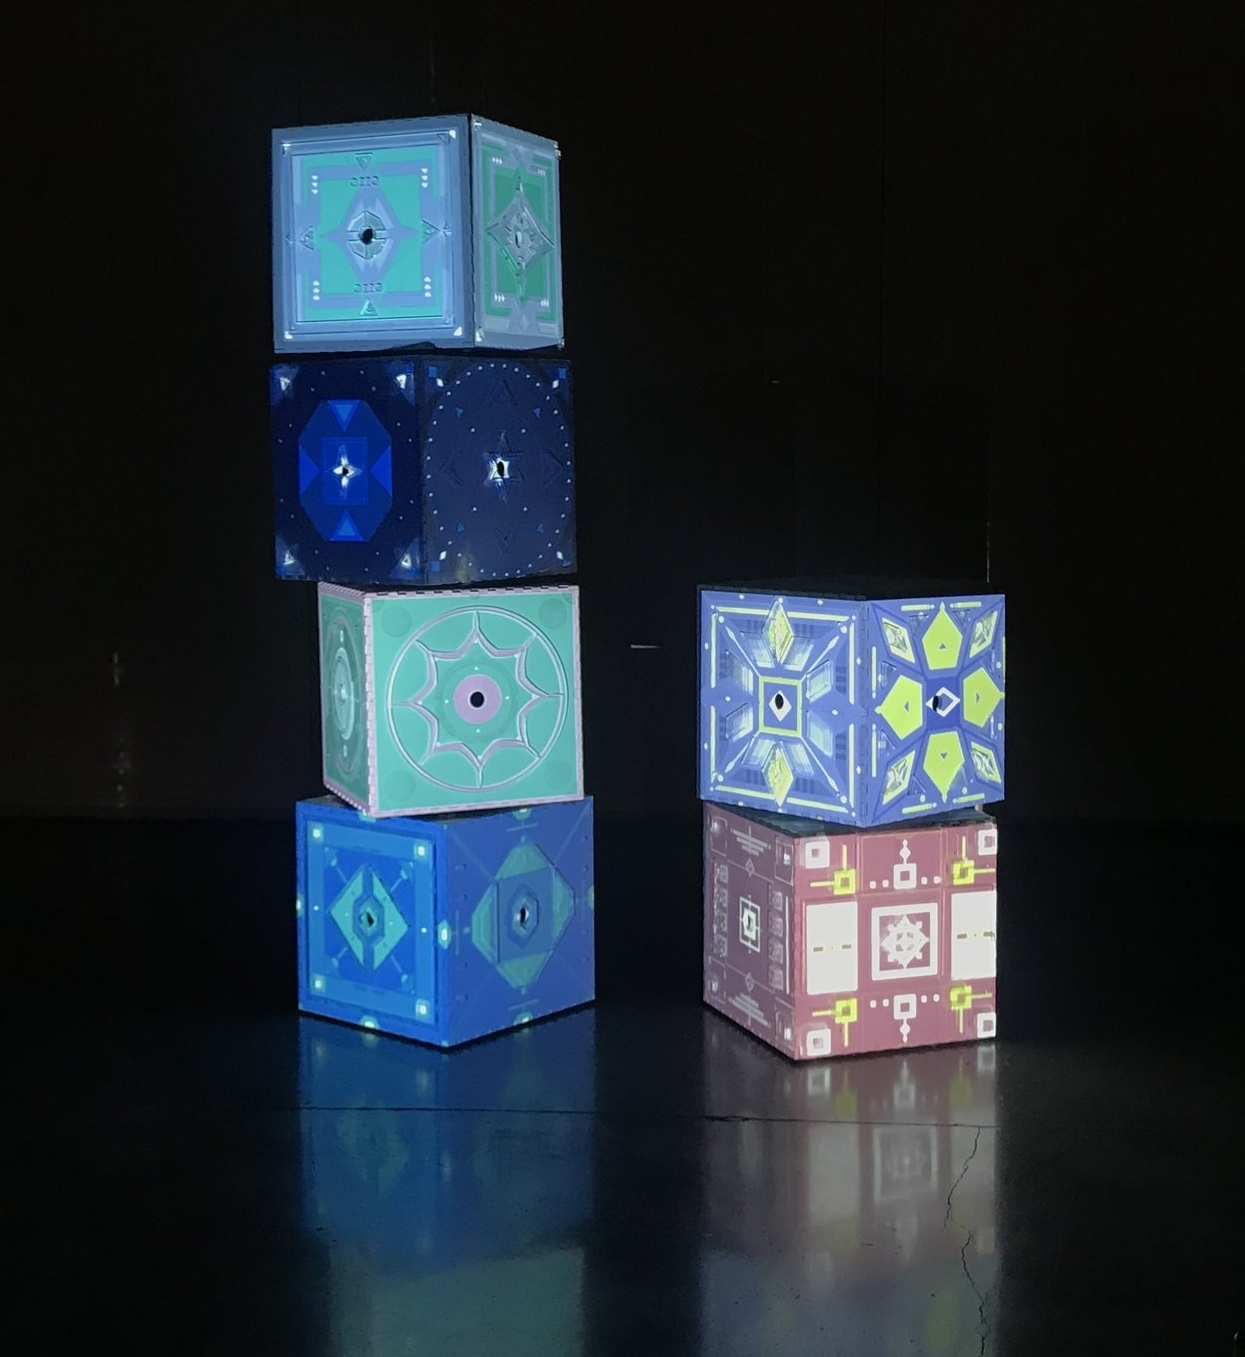 The cubes on stage during the event.